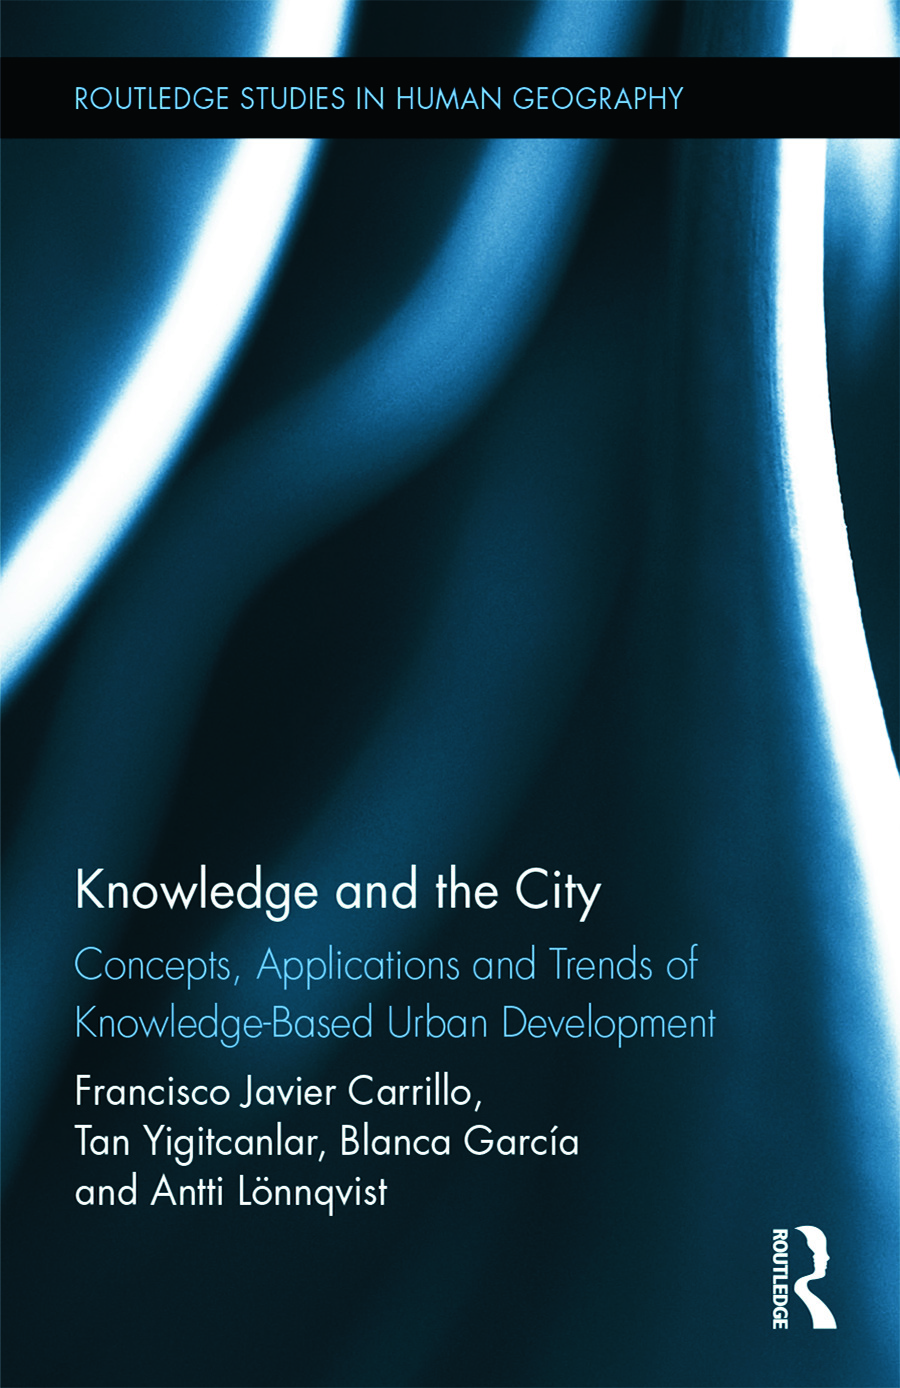 Knowledge and the City: Concepts, Applications and Trends of Knowledge-Based Urban Development book cover